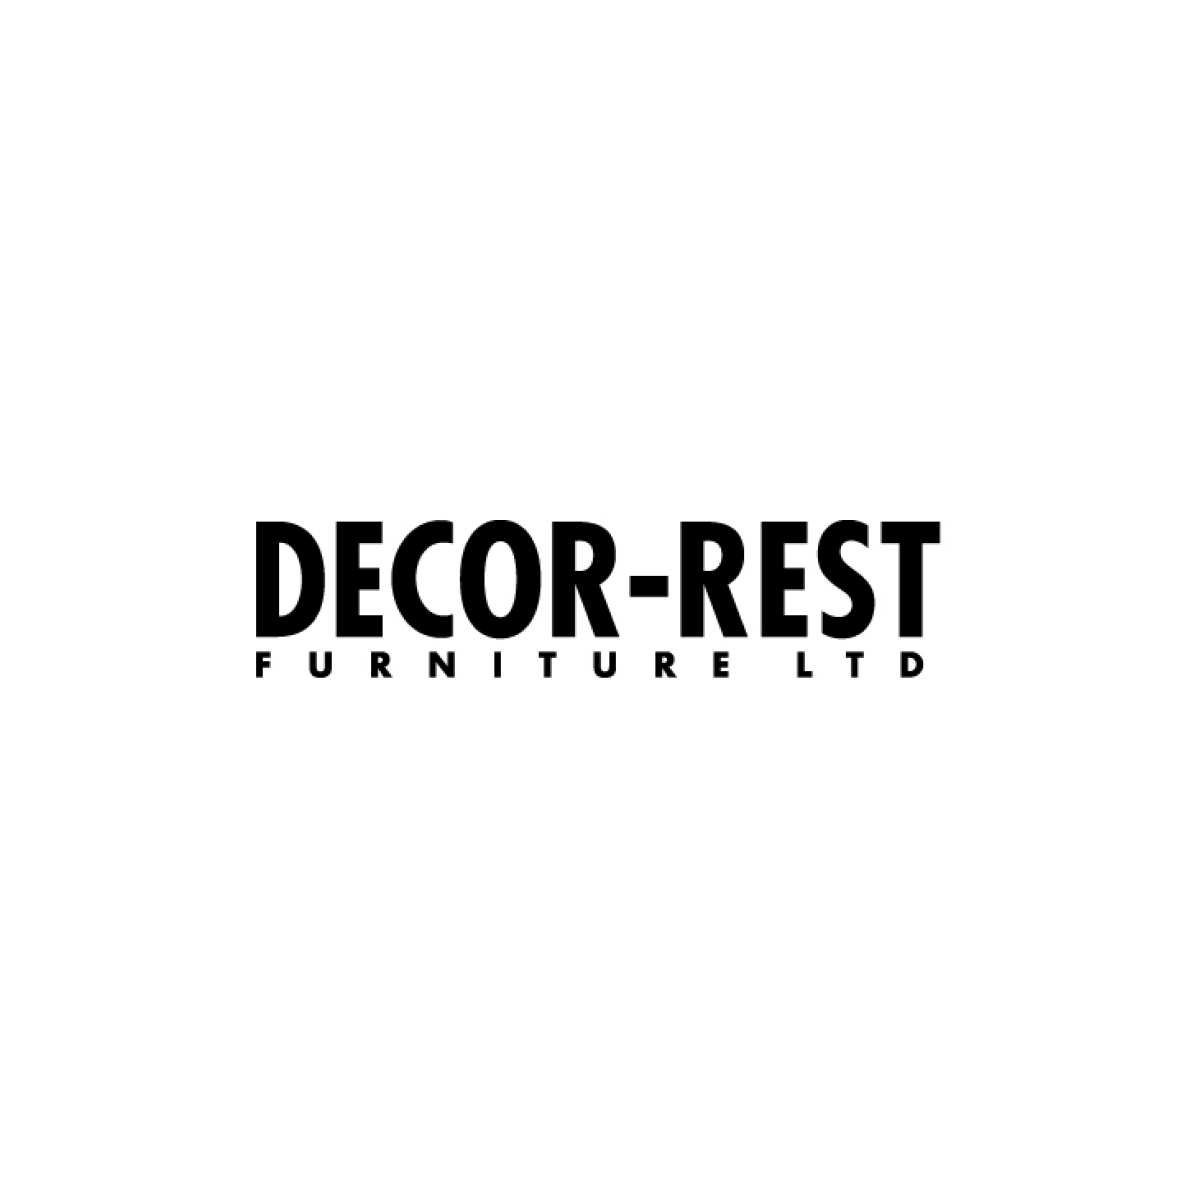 decor_rest